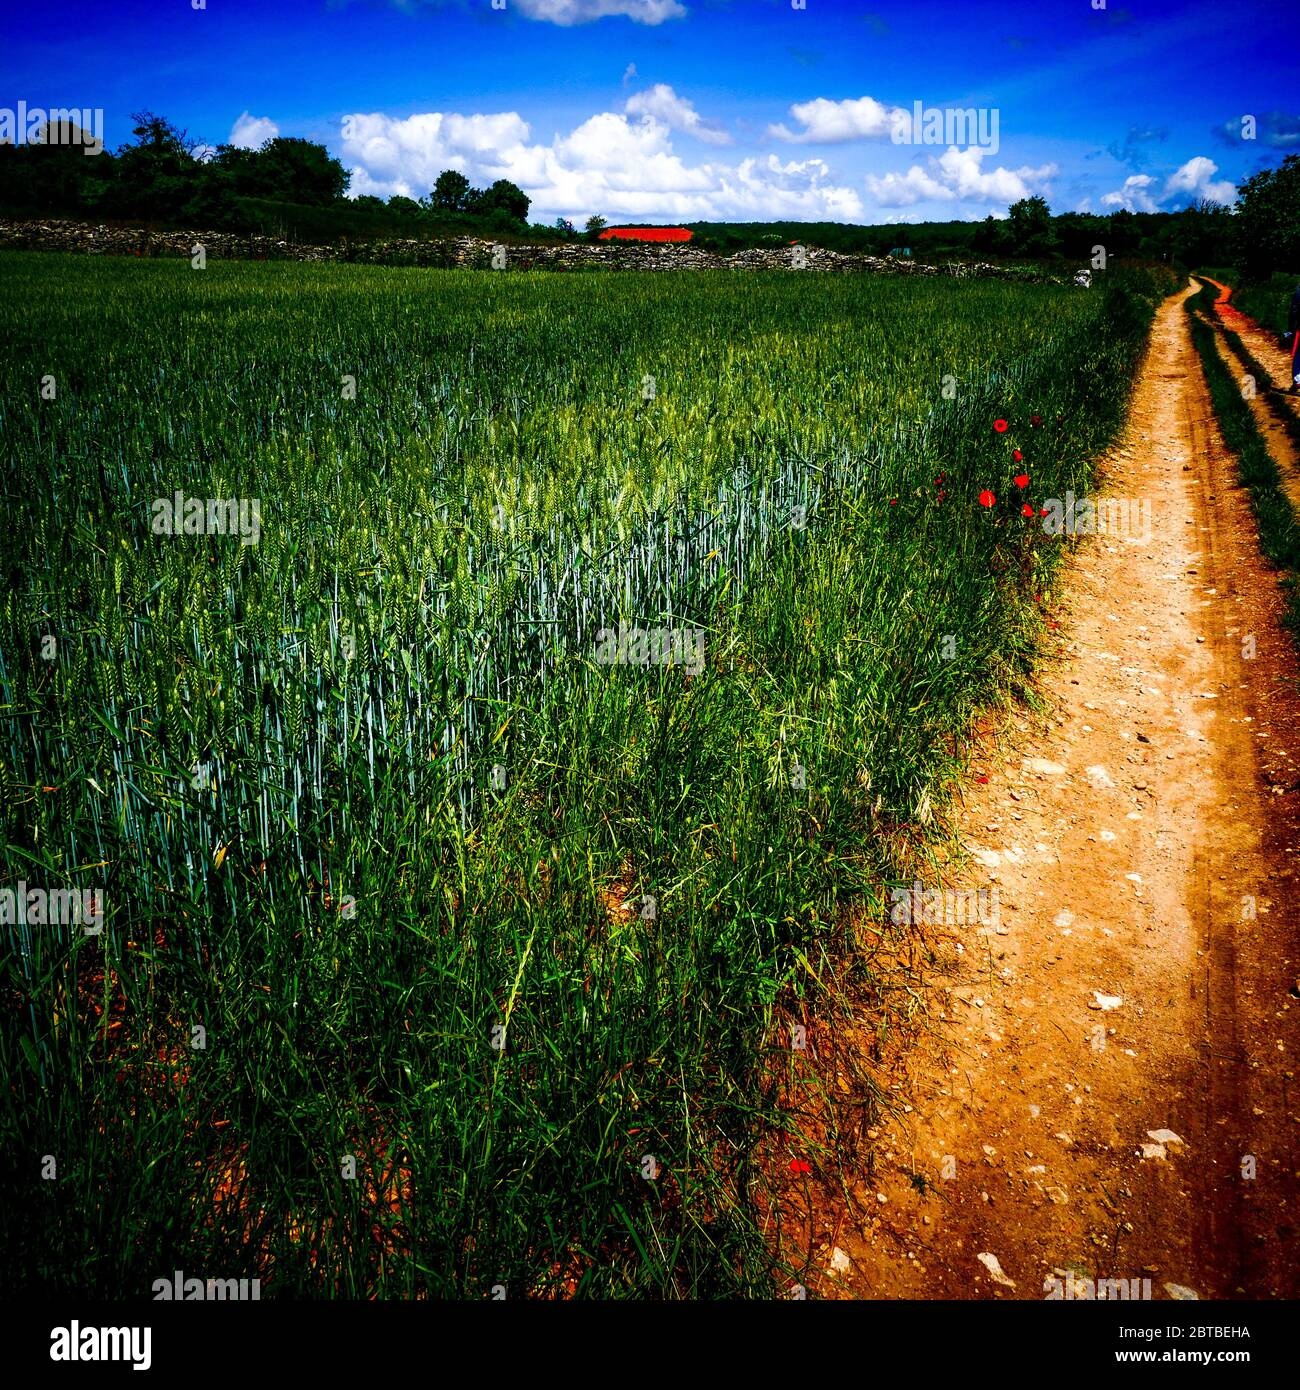 Corn field along a country lane, digitaly filterd view, Isere, France Stock Photo